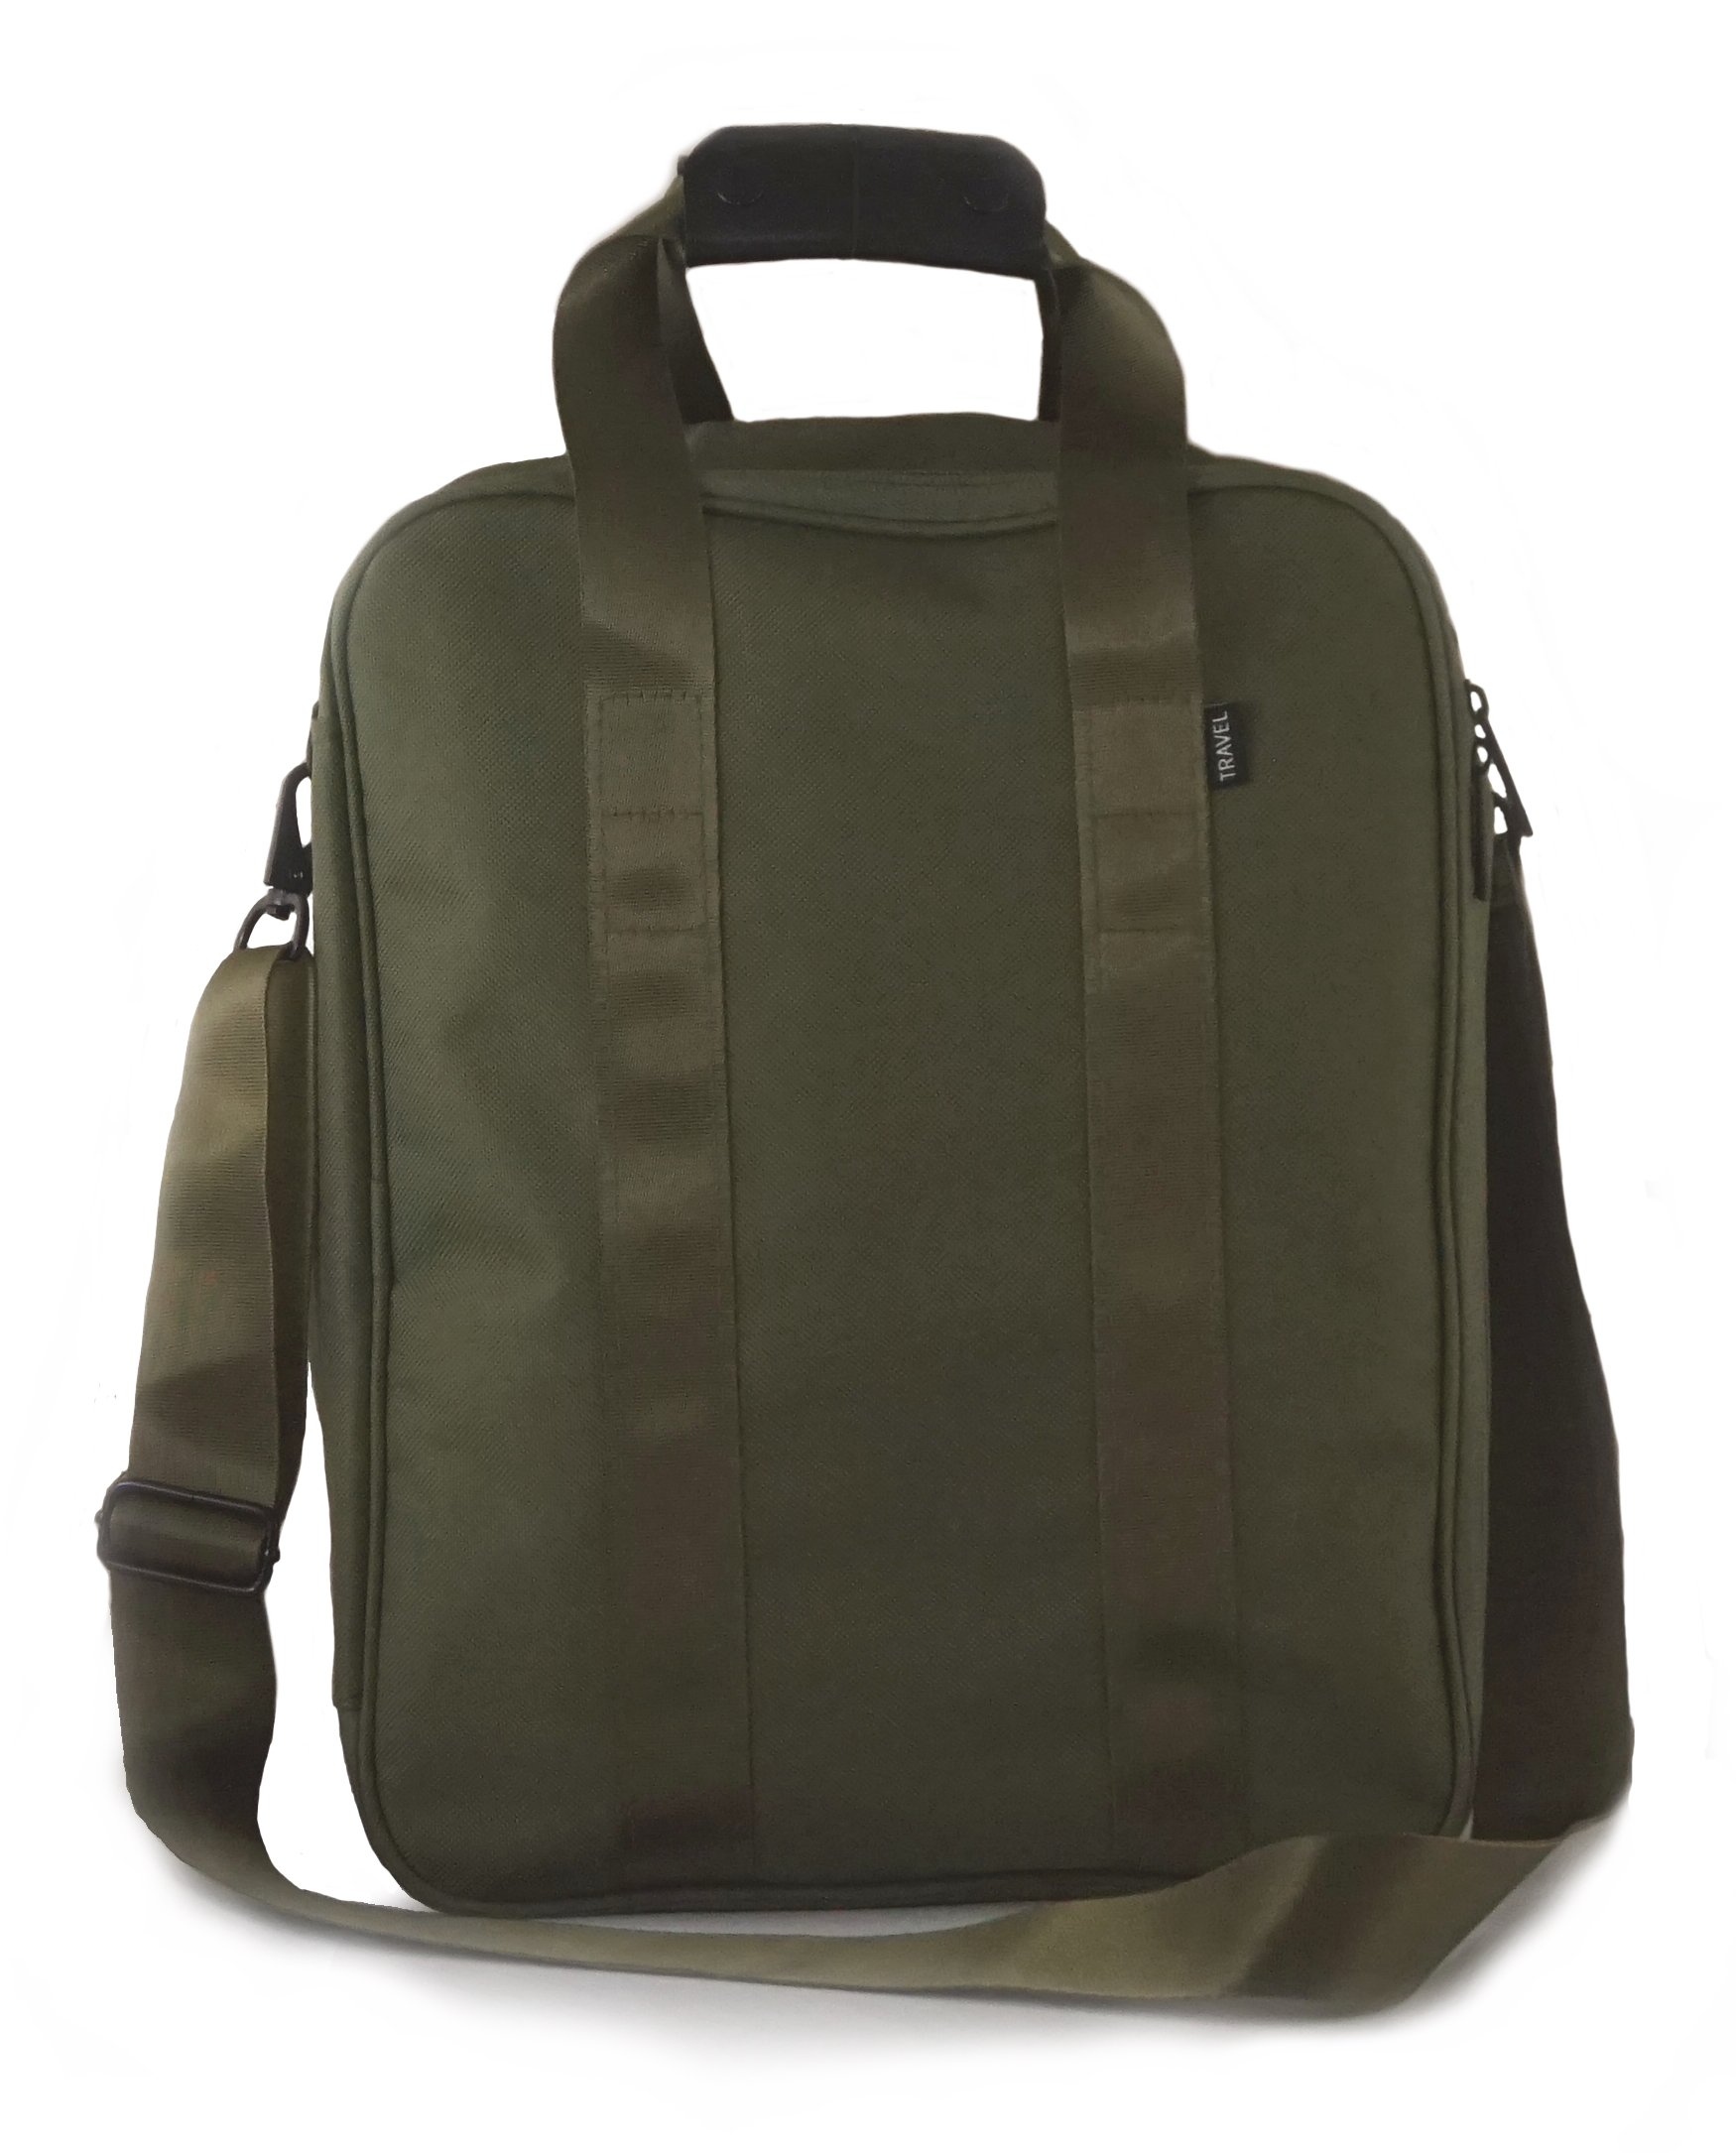 Simplily Unisex-Adult Travel Carry-on Under the Seat Luggage Bag, Army Green